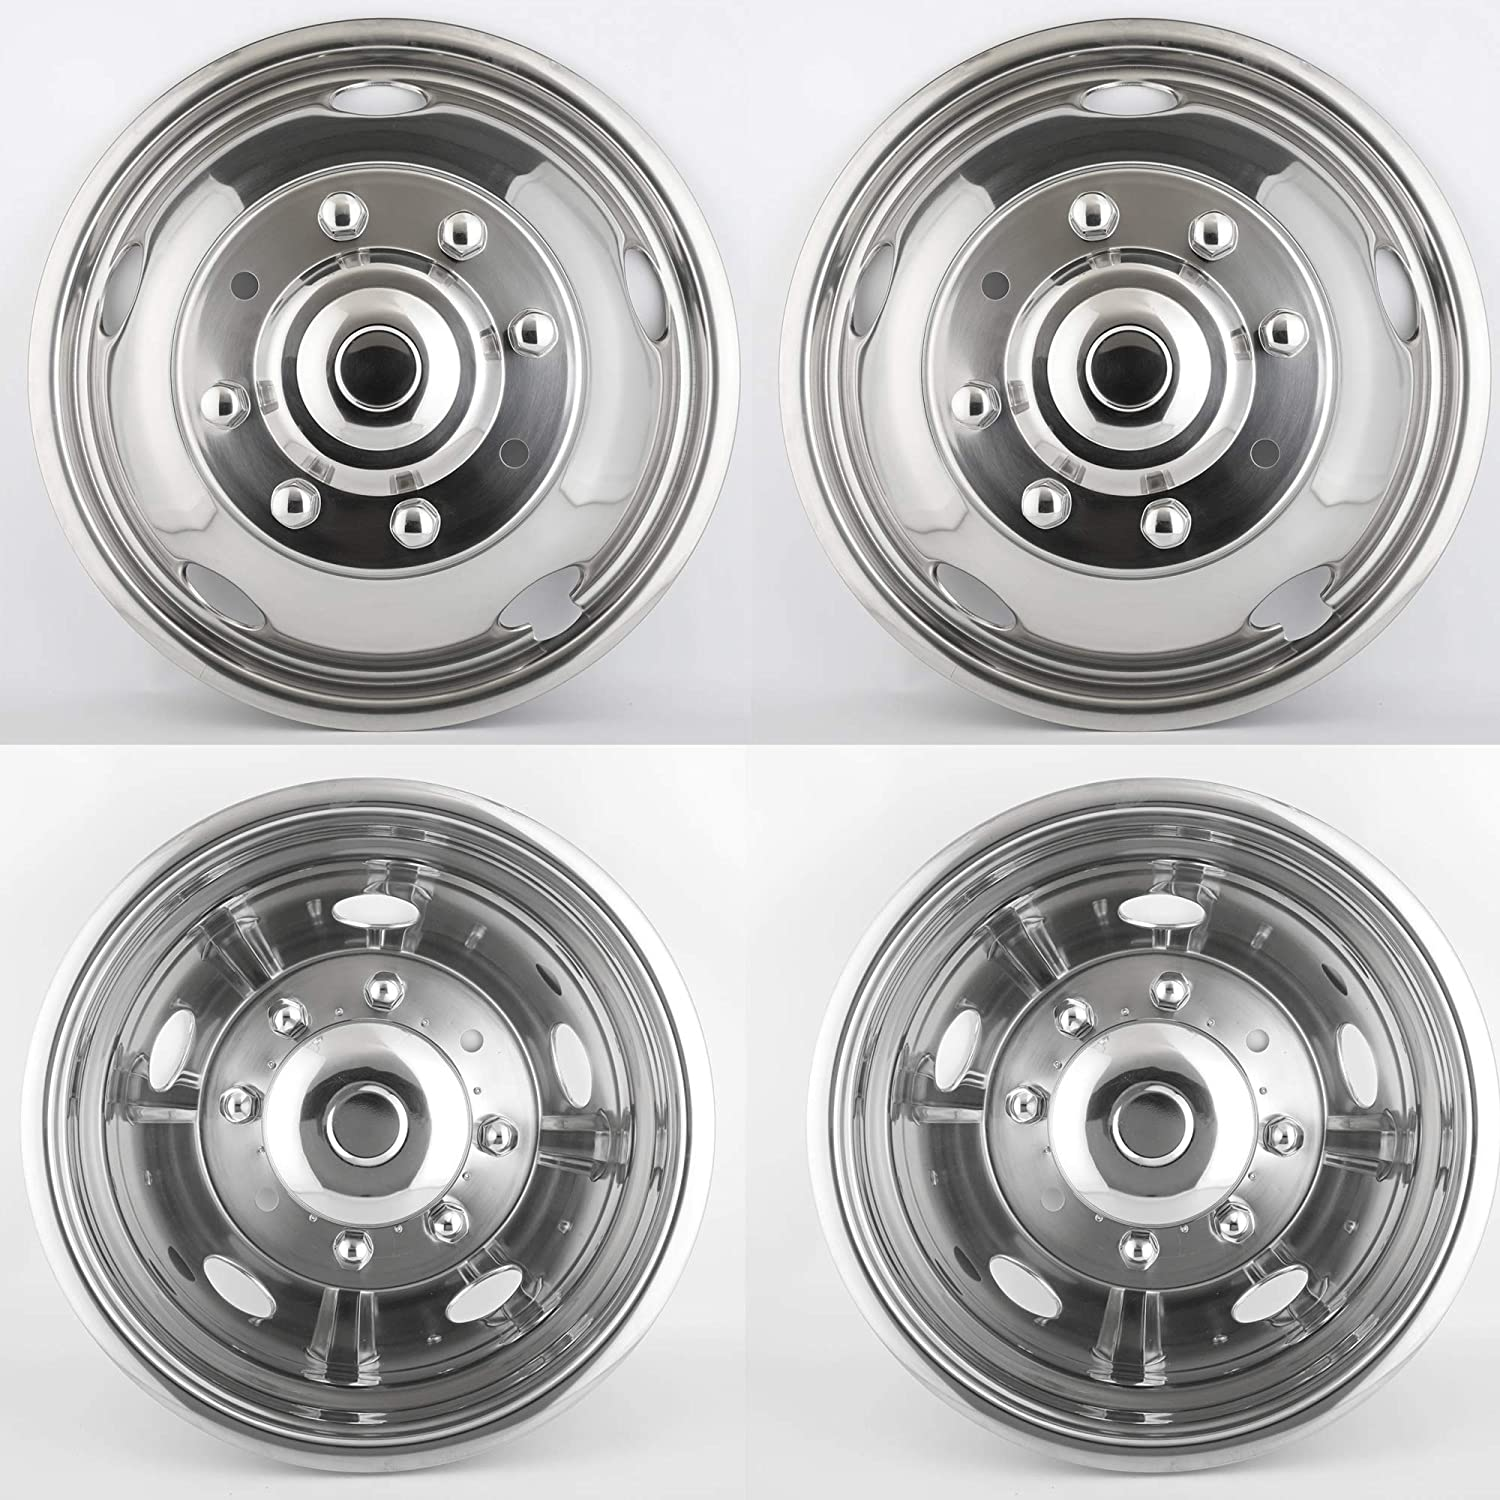 Puermto 4pcs 19.5 Polished Stainless Steel Dually Wheel Simulators Nice looking and Durable/Bolt On Wheel Covers 10 Lug Hubcaps/Fit for 2008-2020 Dodge Ram 4500//5500 with Installation Tool Kit